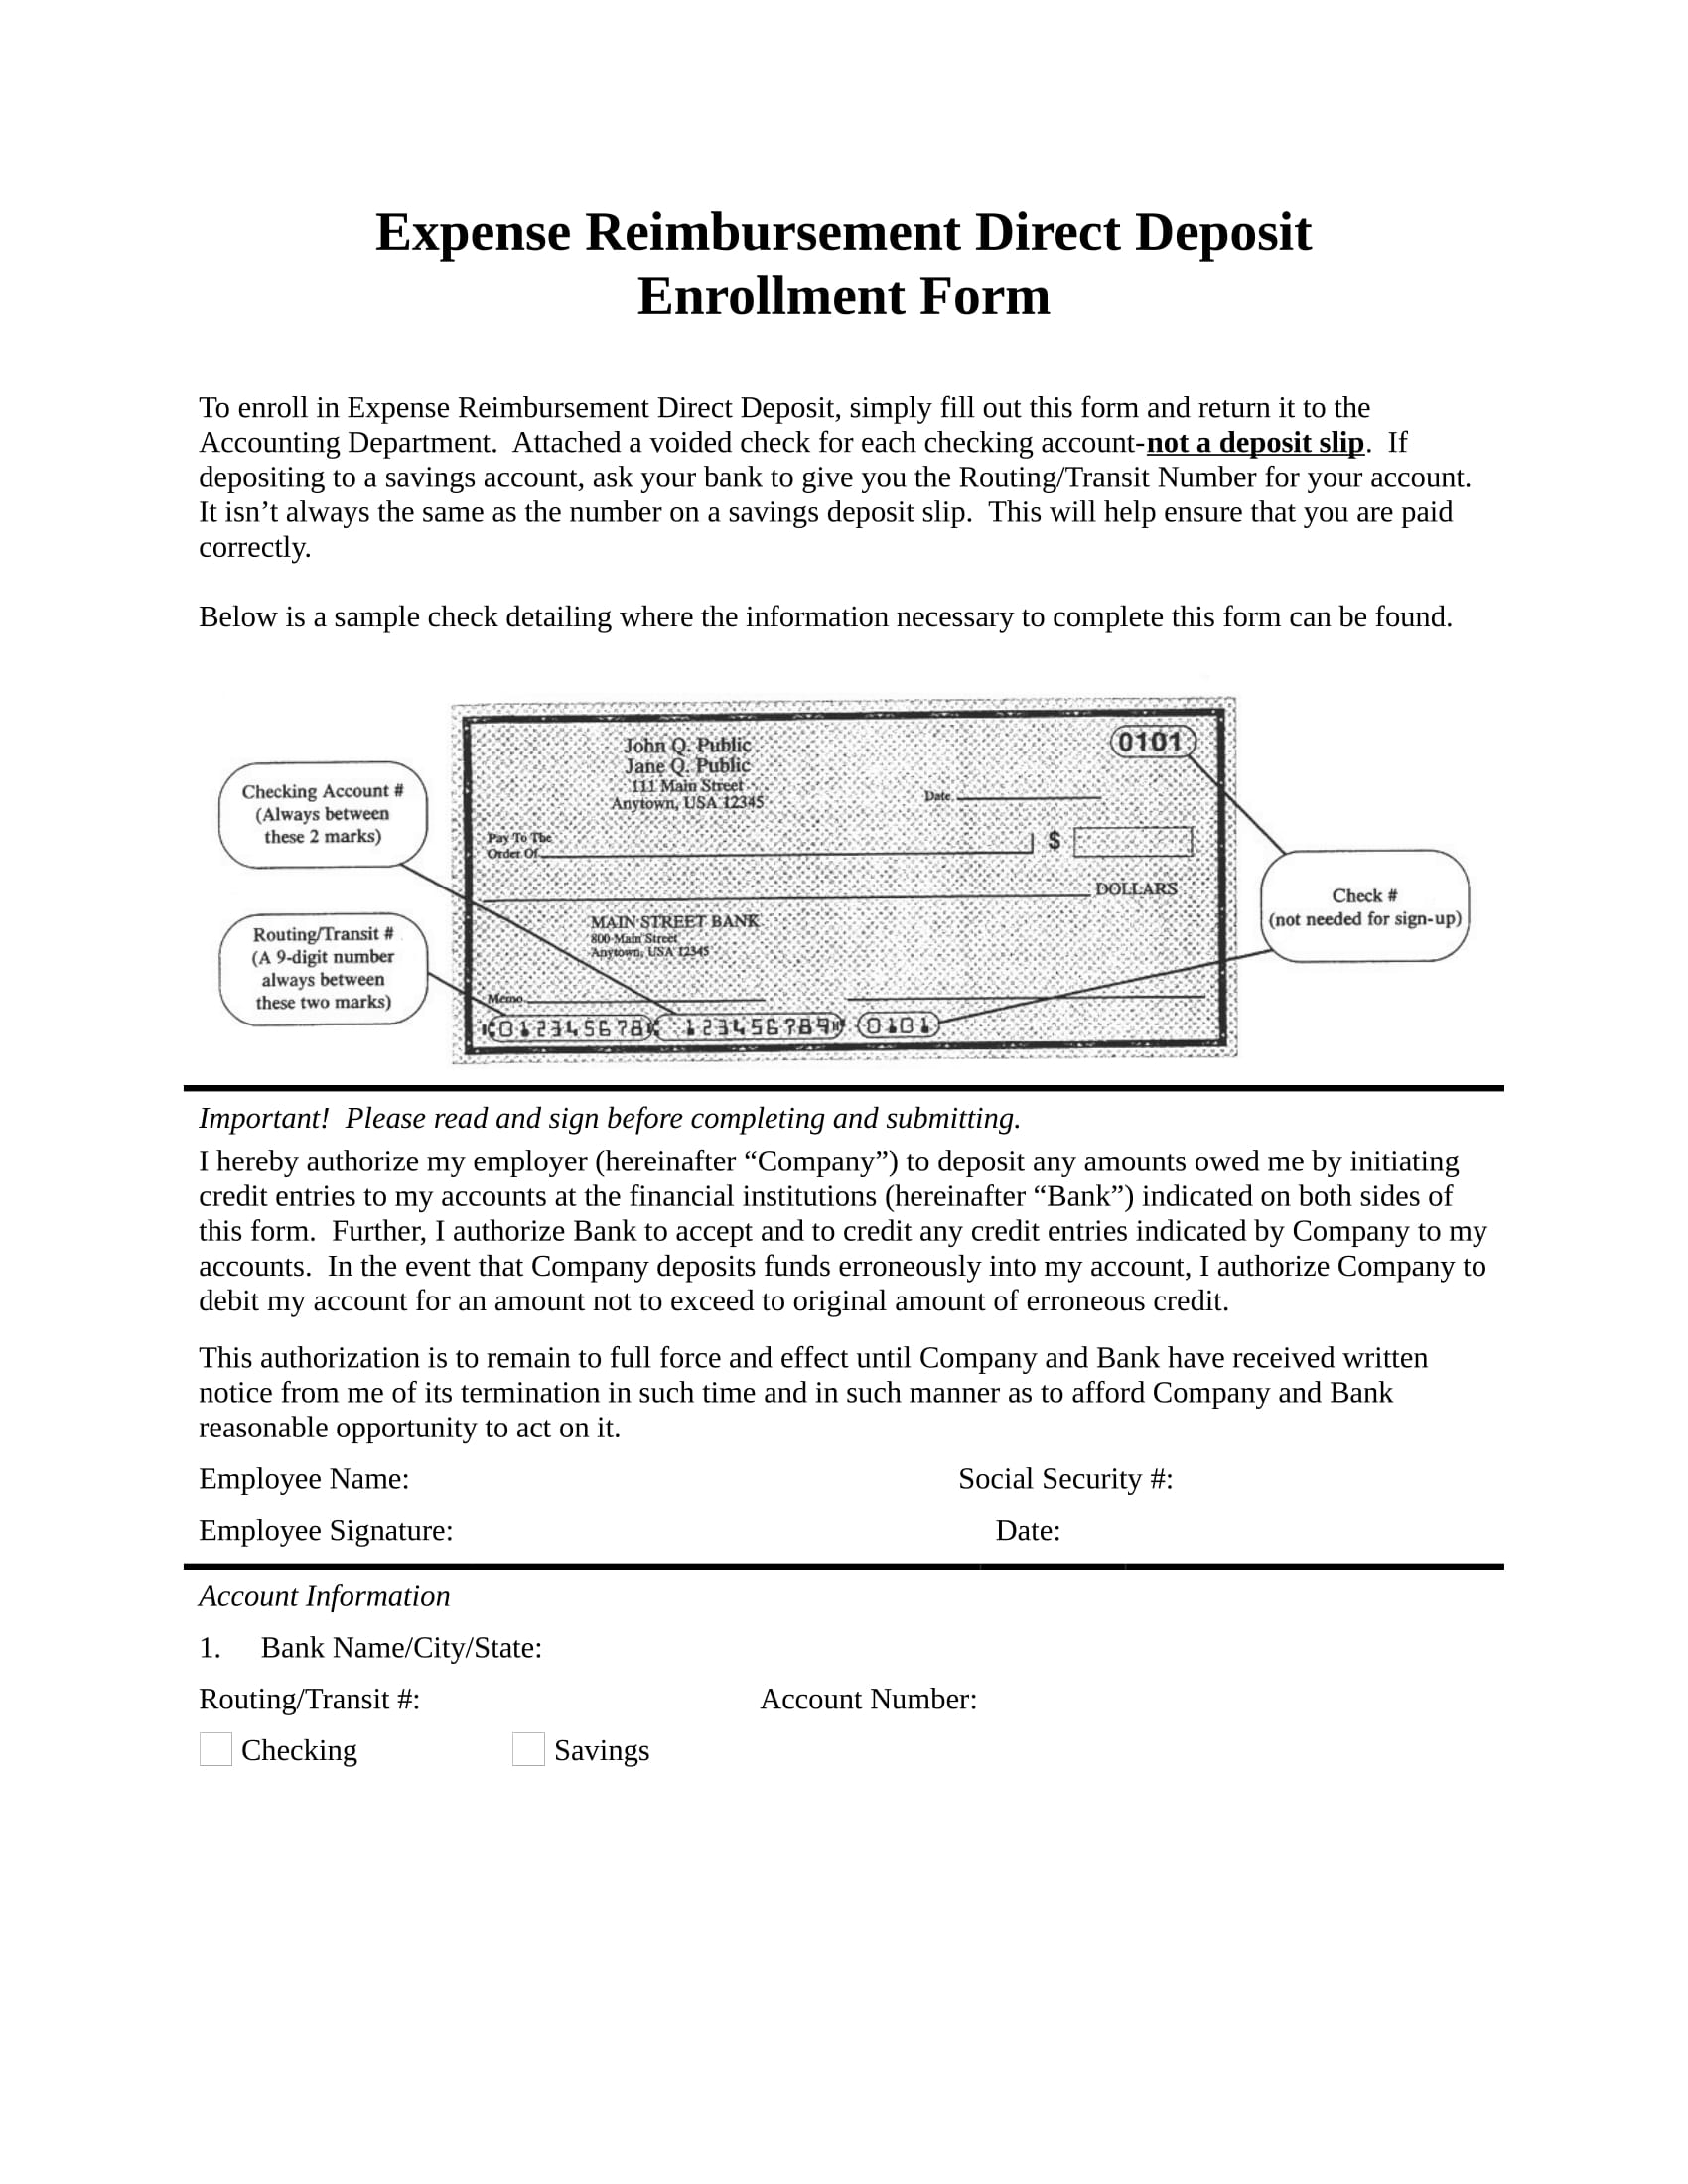 FREE 14+ Direct Deposit Enrollment Forms in Word | PDF